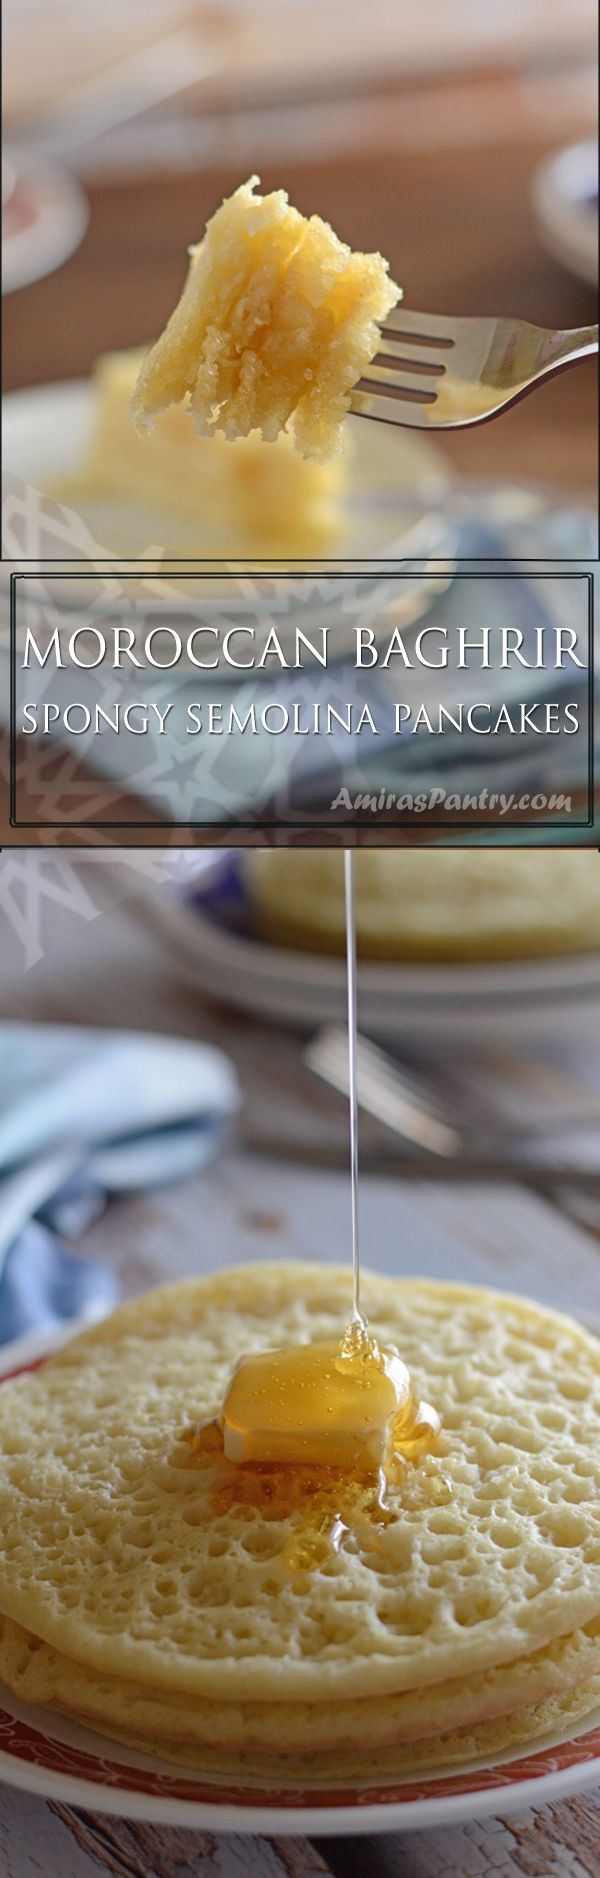 Sweet and fluffy pancakes, very spongy and light. Baghrir is a Moroccan traditional recipe for pancakes.Get this authentic moroccan recipe at AmirasPantry.com